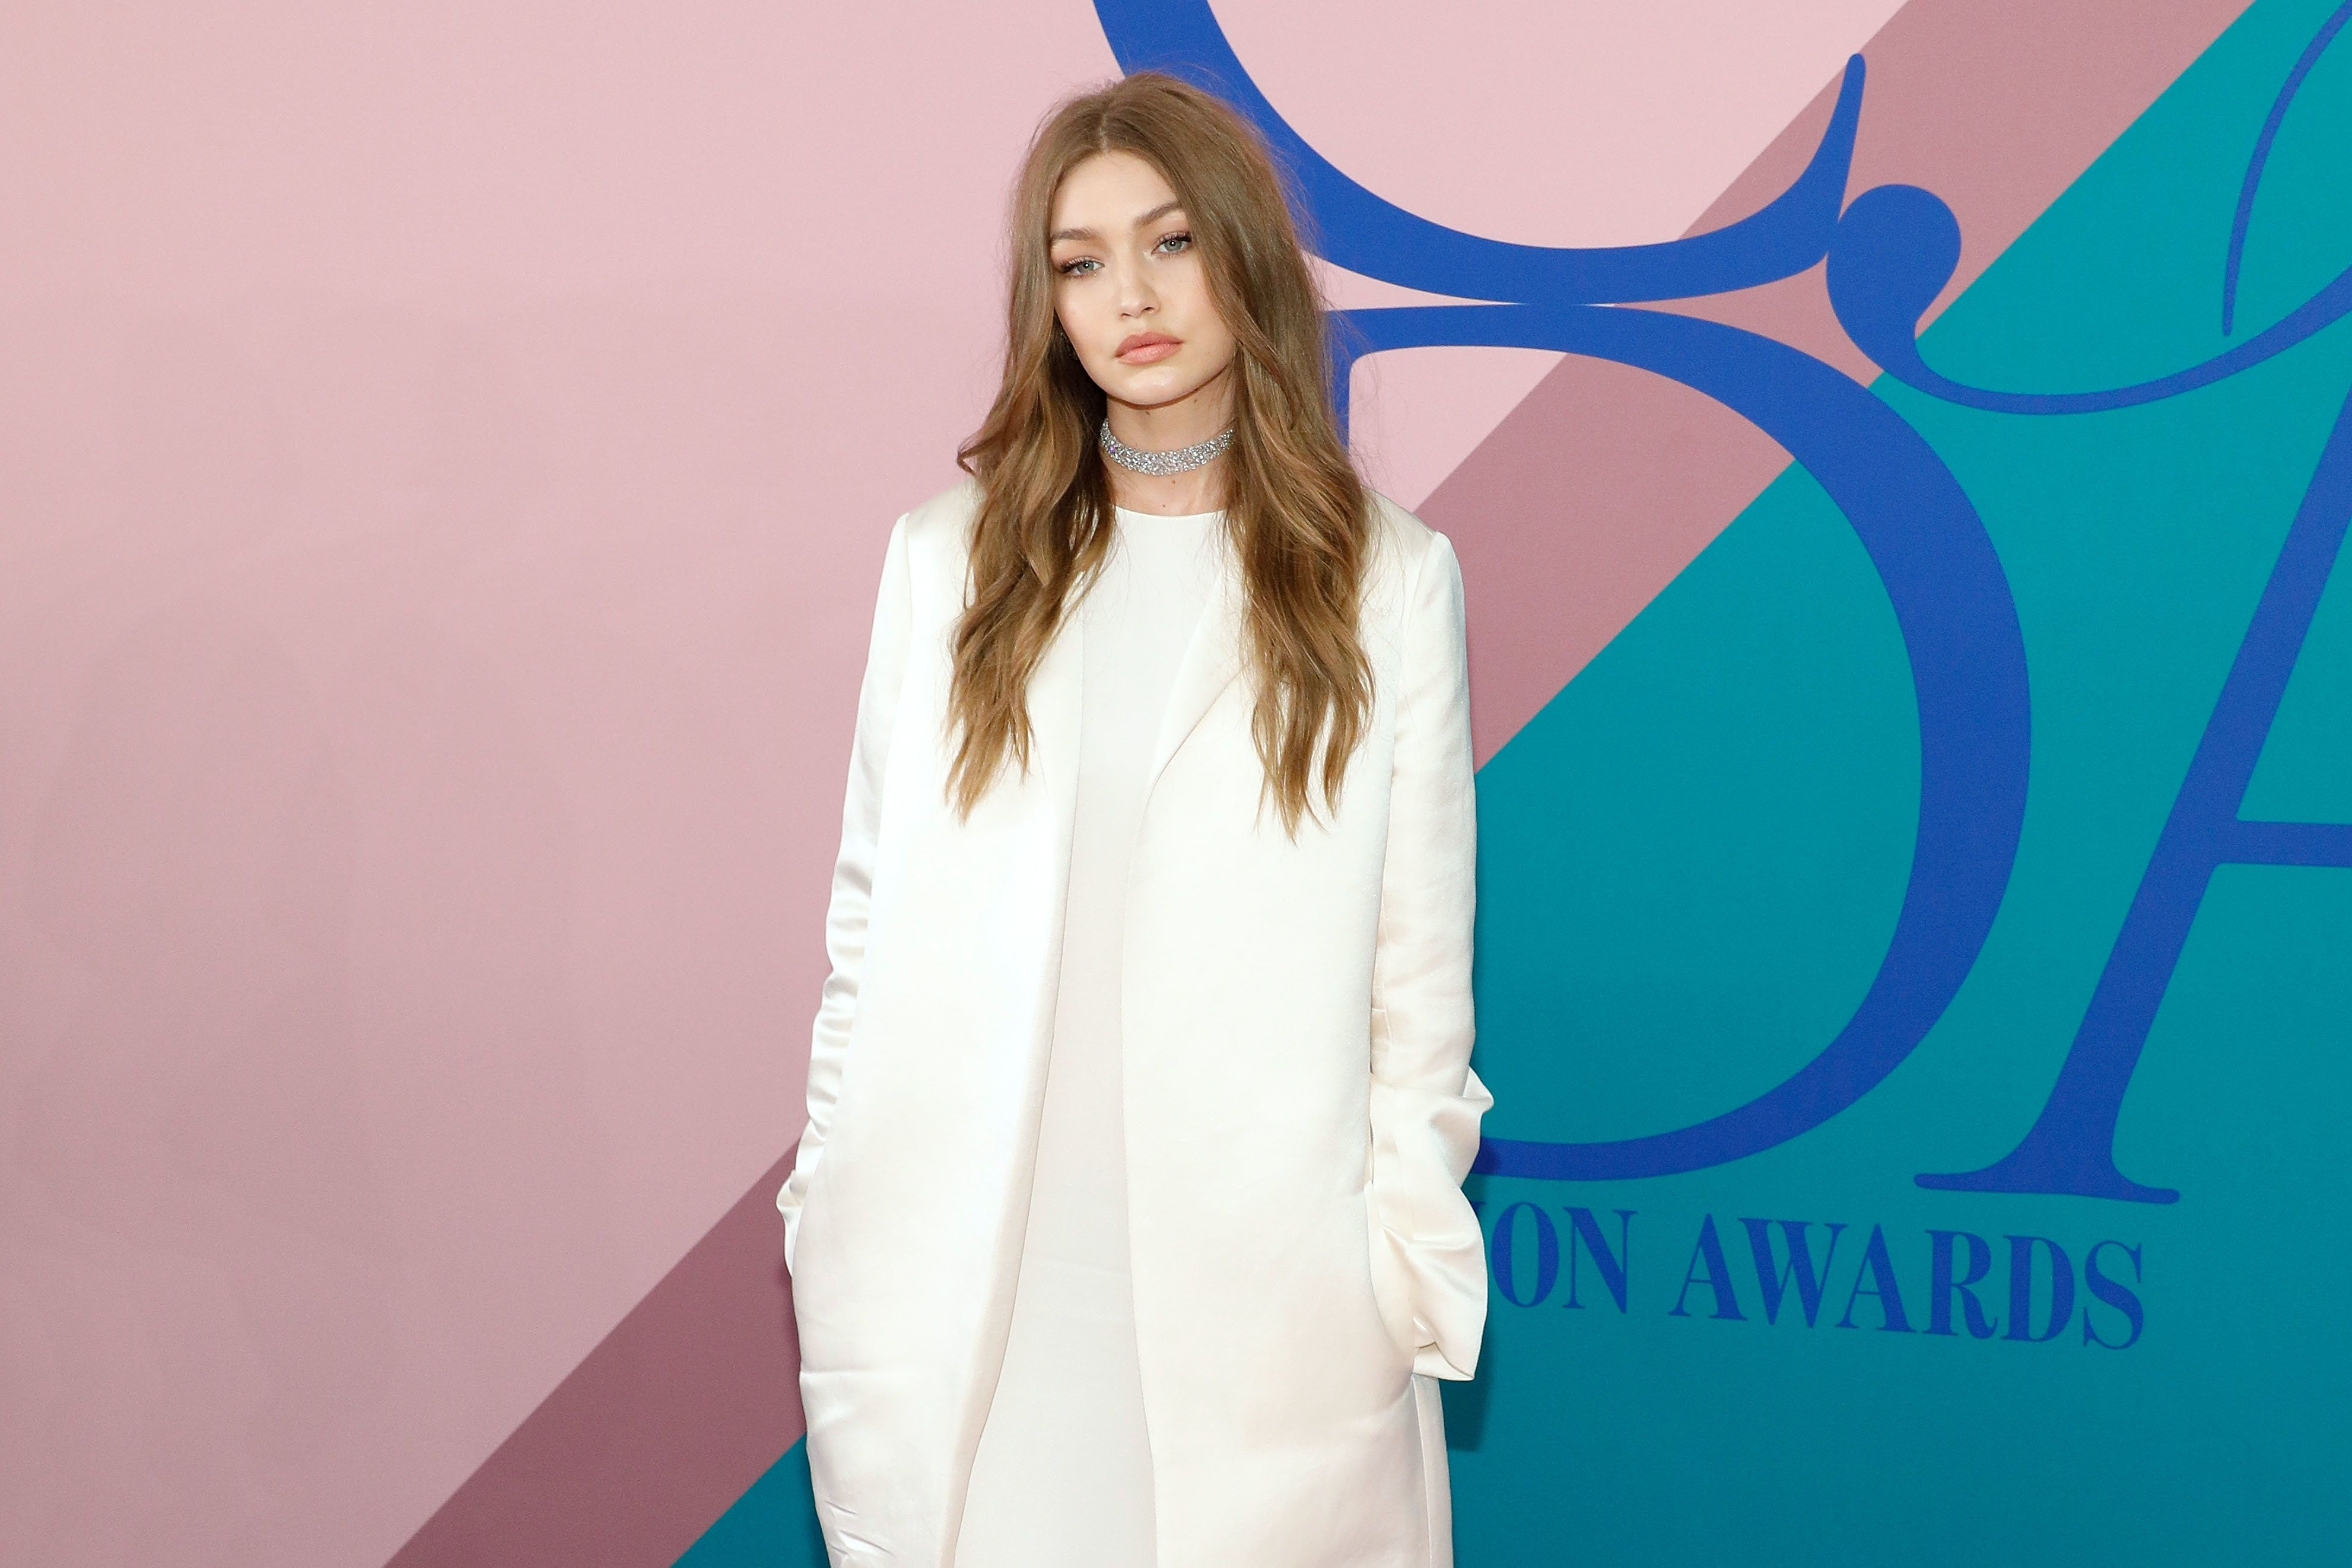 NEW YORK, NY - JUNE 05:  Gigi Hadid attends the 2017 CFDA Fashion Awards at Hammerstein Ballroom on June 5, 2017 in New York City.  (Photo by Taylor Hill/FilmMagic)